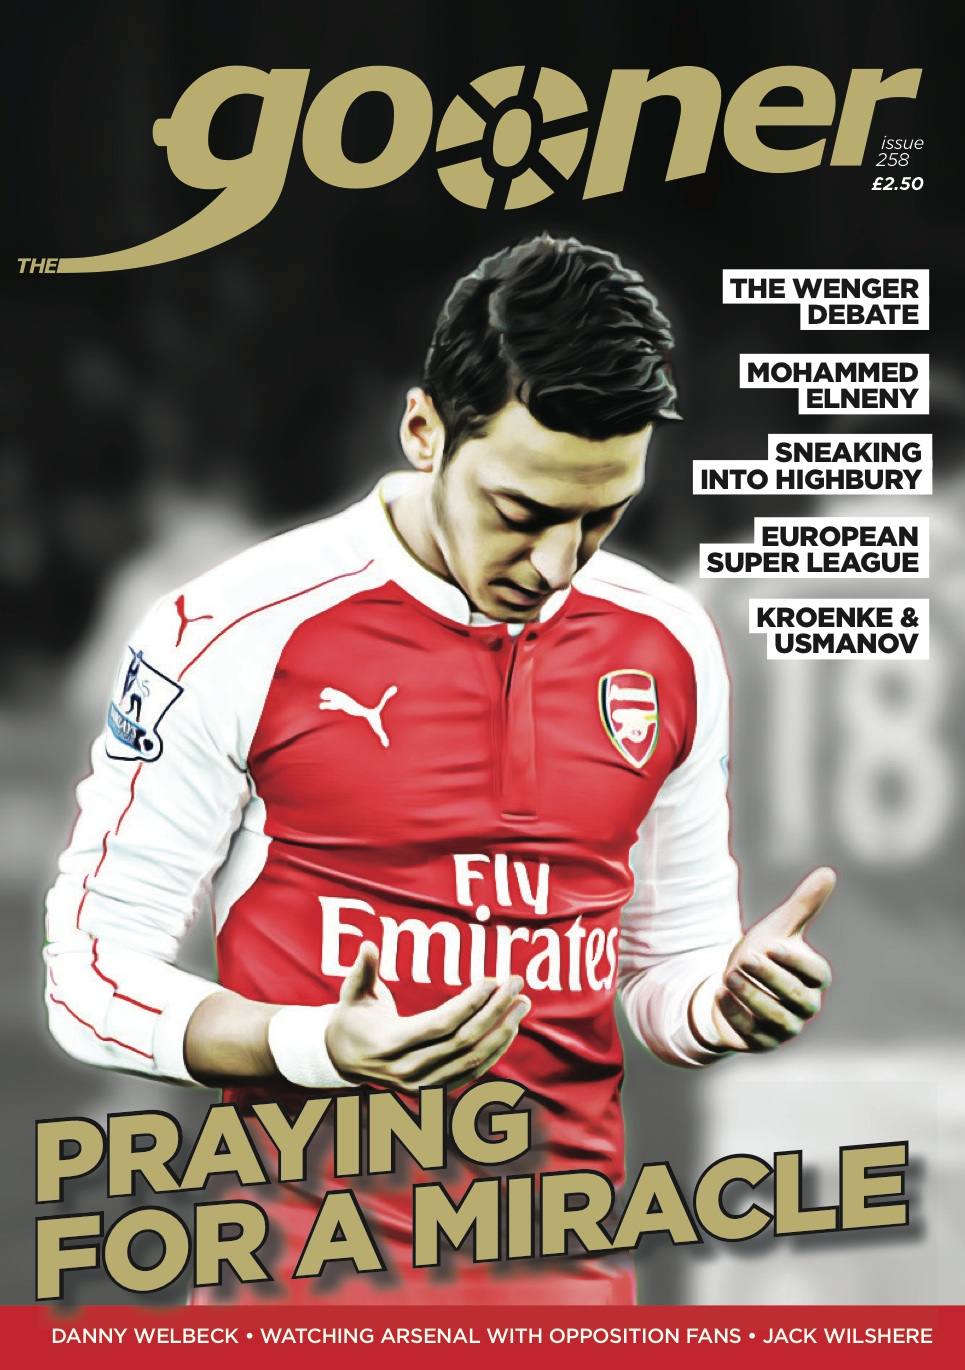 The Gooner - Issue 258